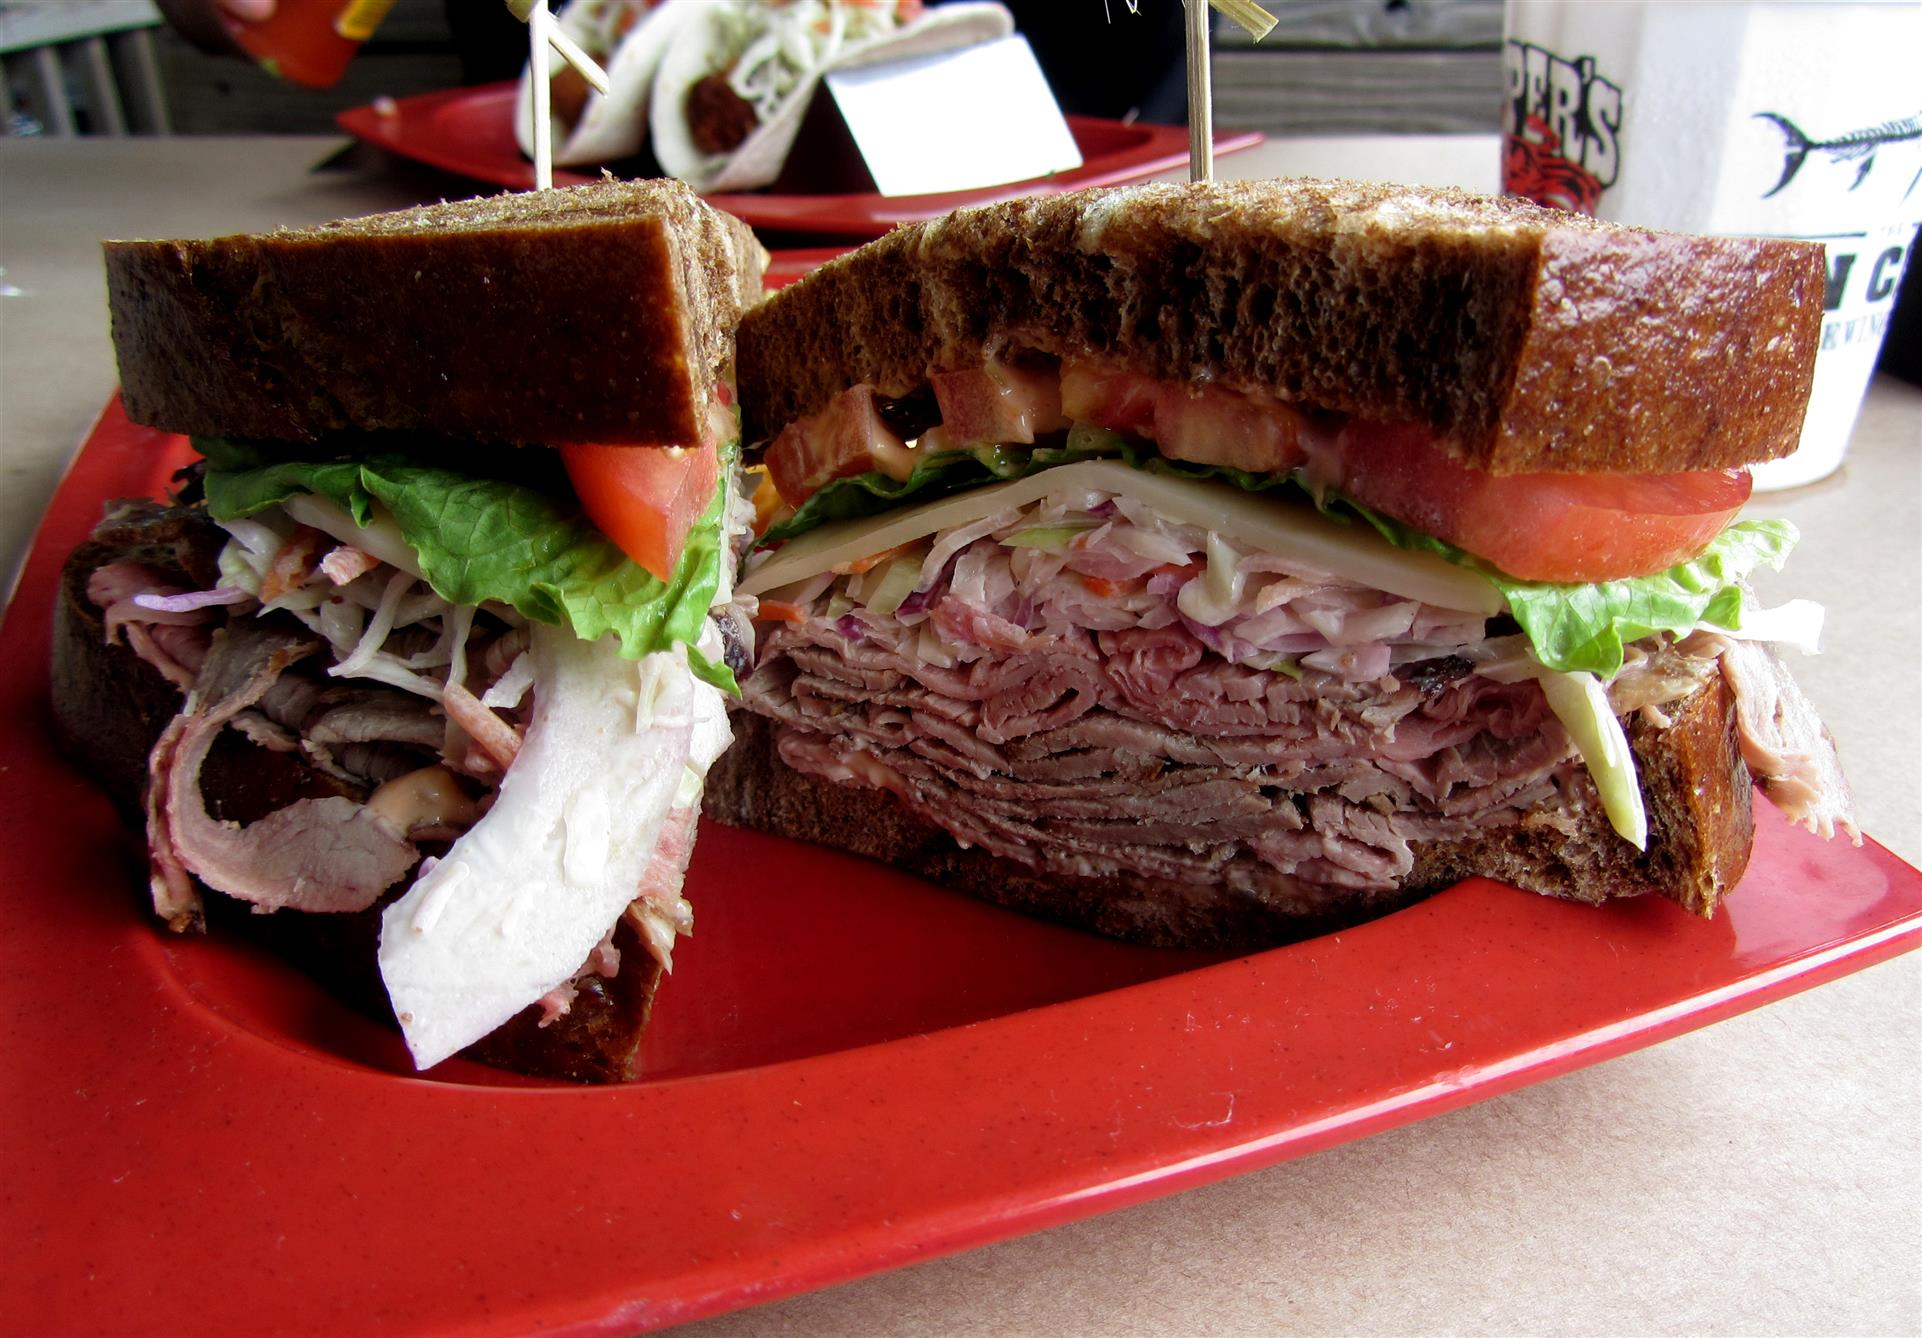 A cold cut sandwich which includes ham, roast beef, swiss cheese, salami, lettuce and tomato